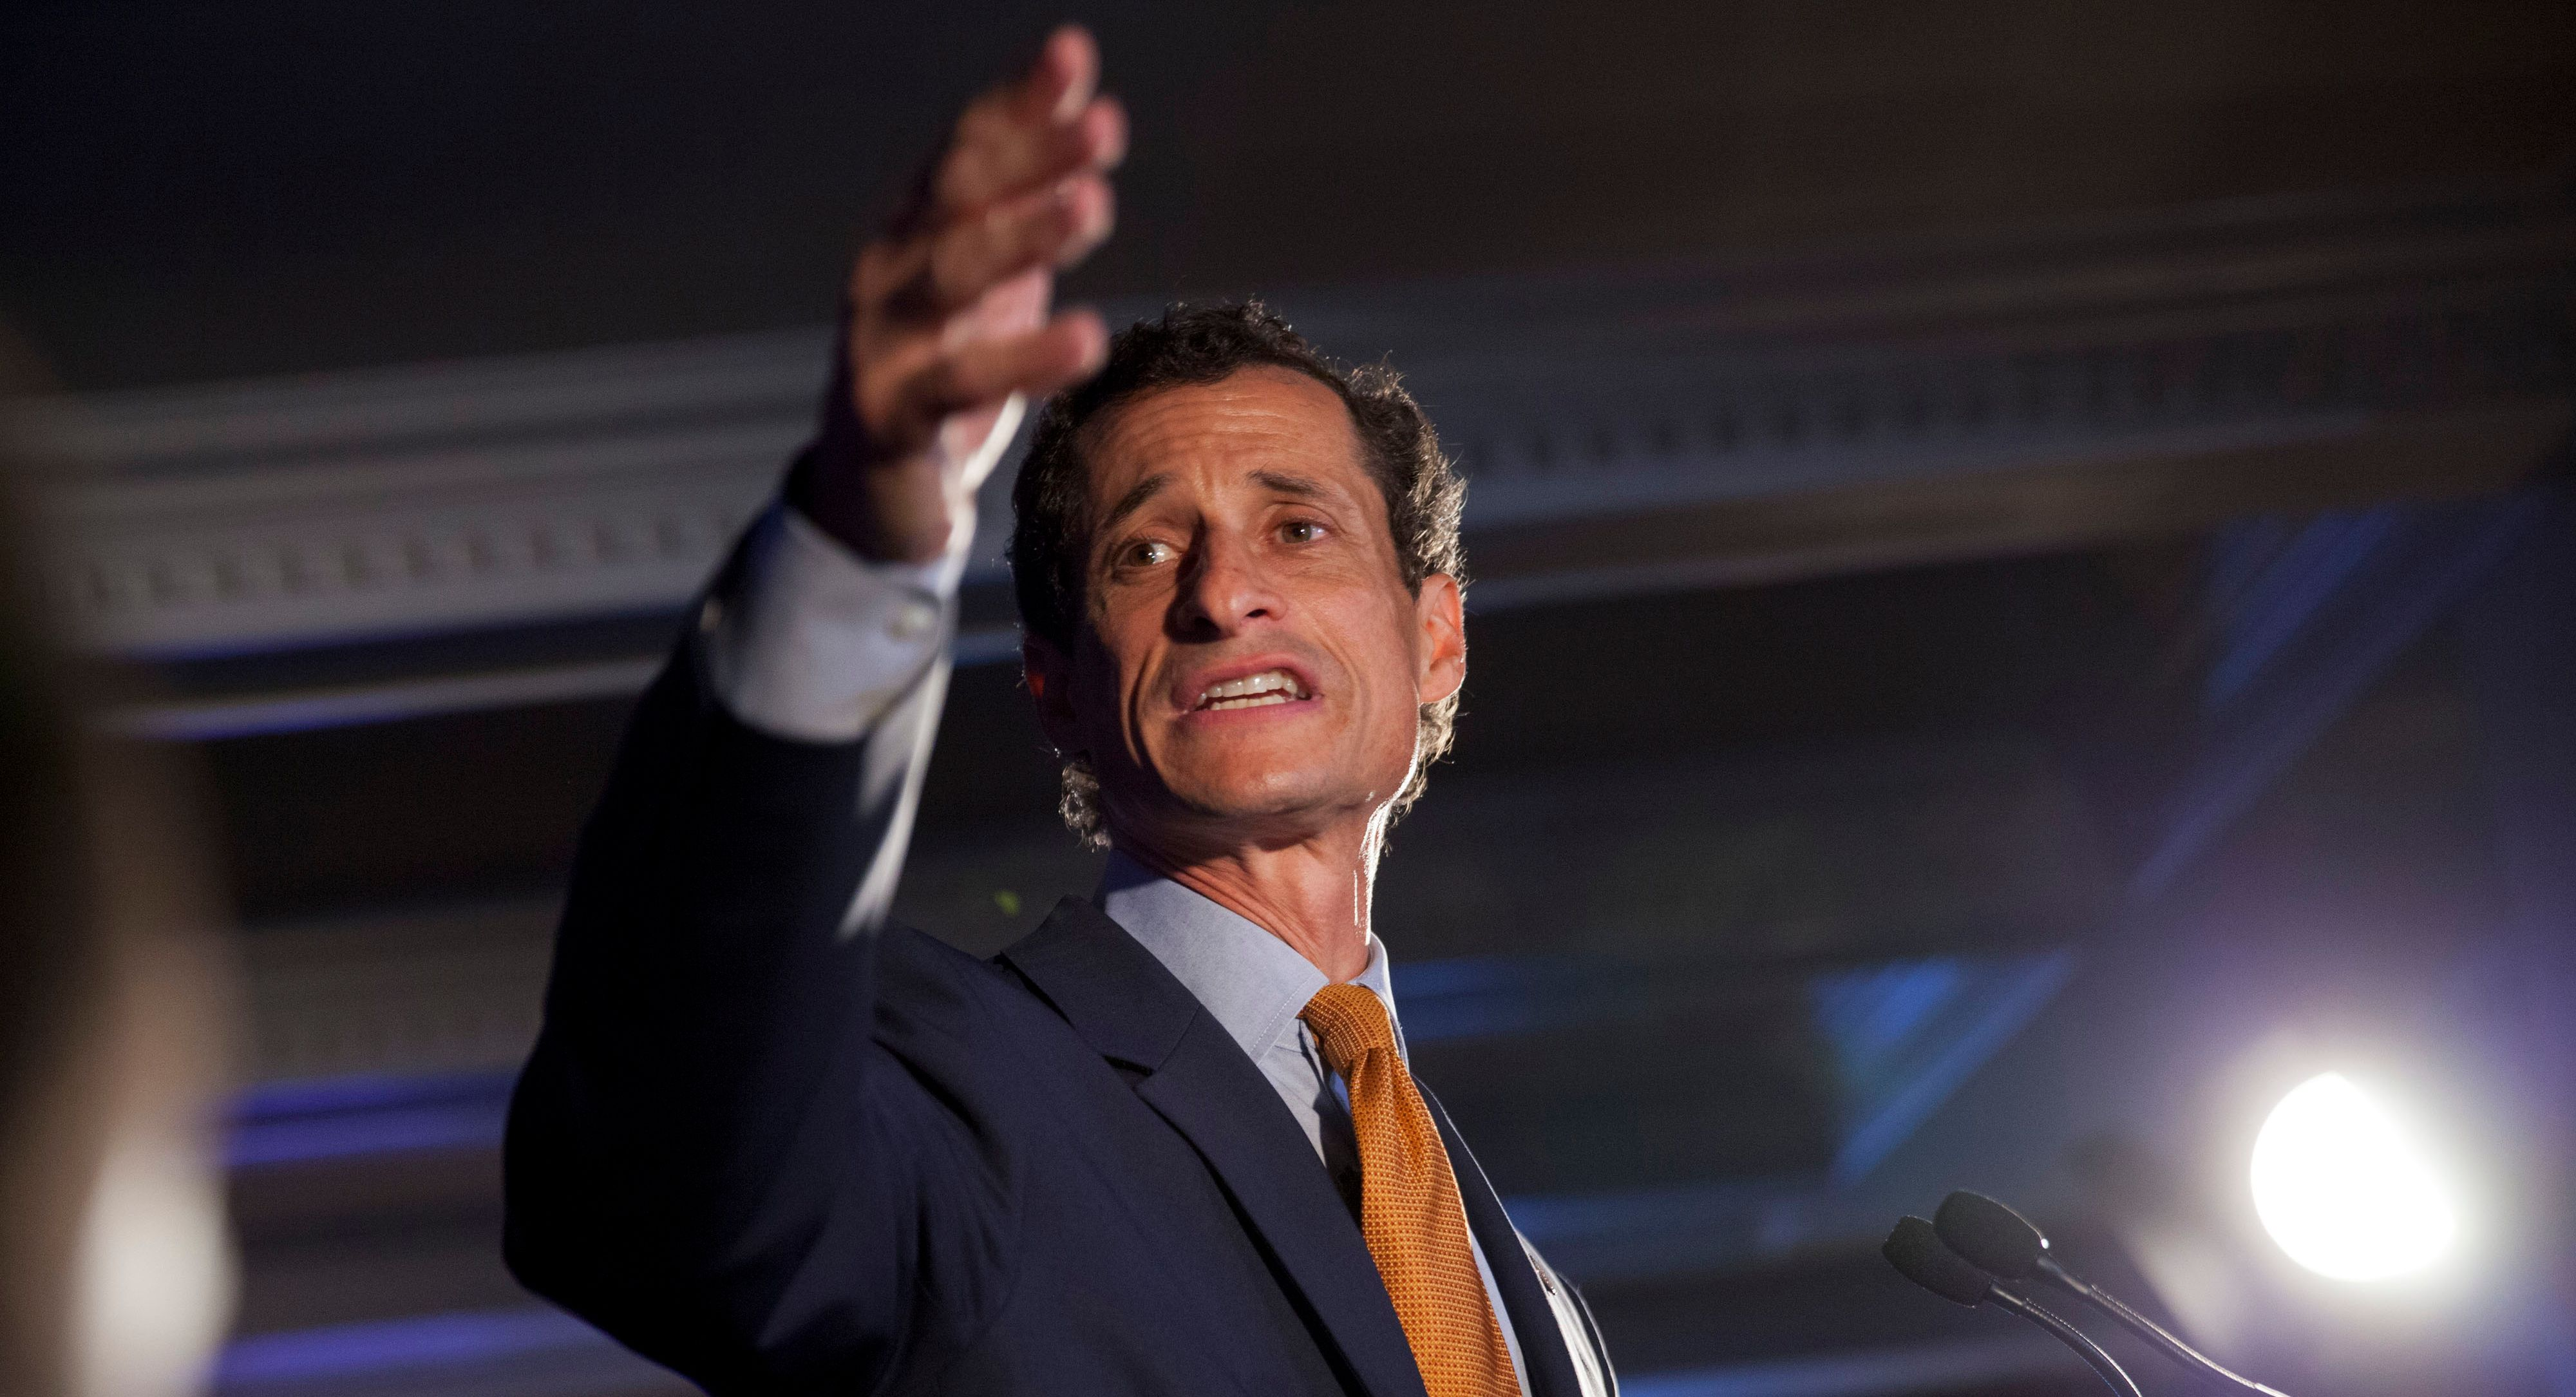 Anthony Weiner's Twitter account disappears - Politico